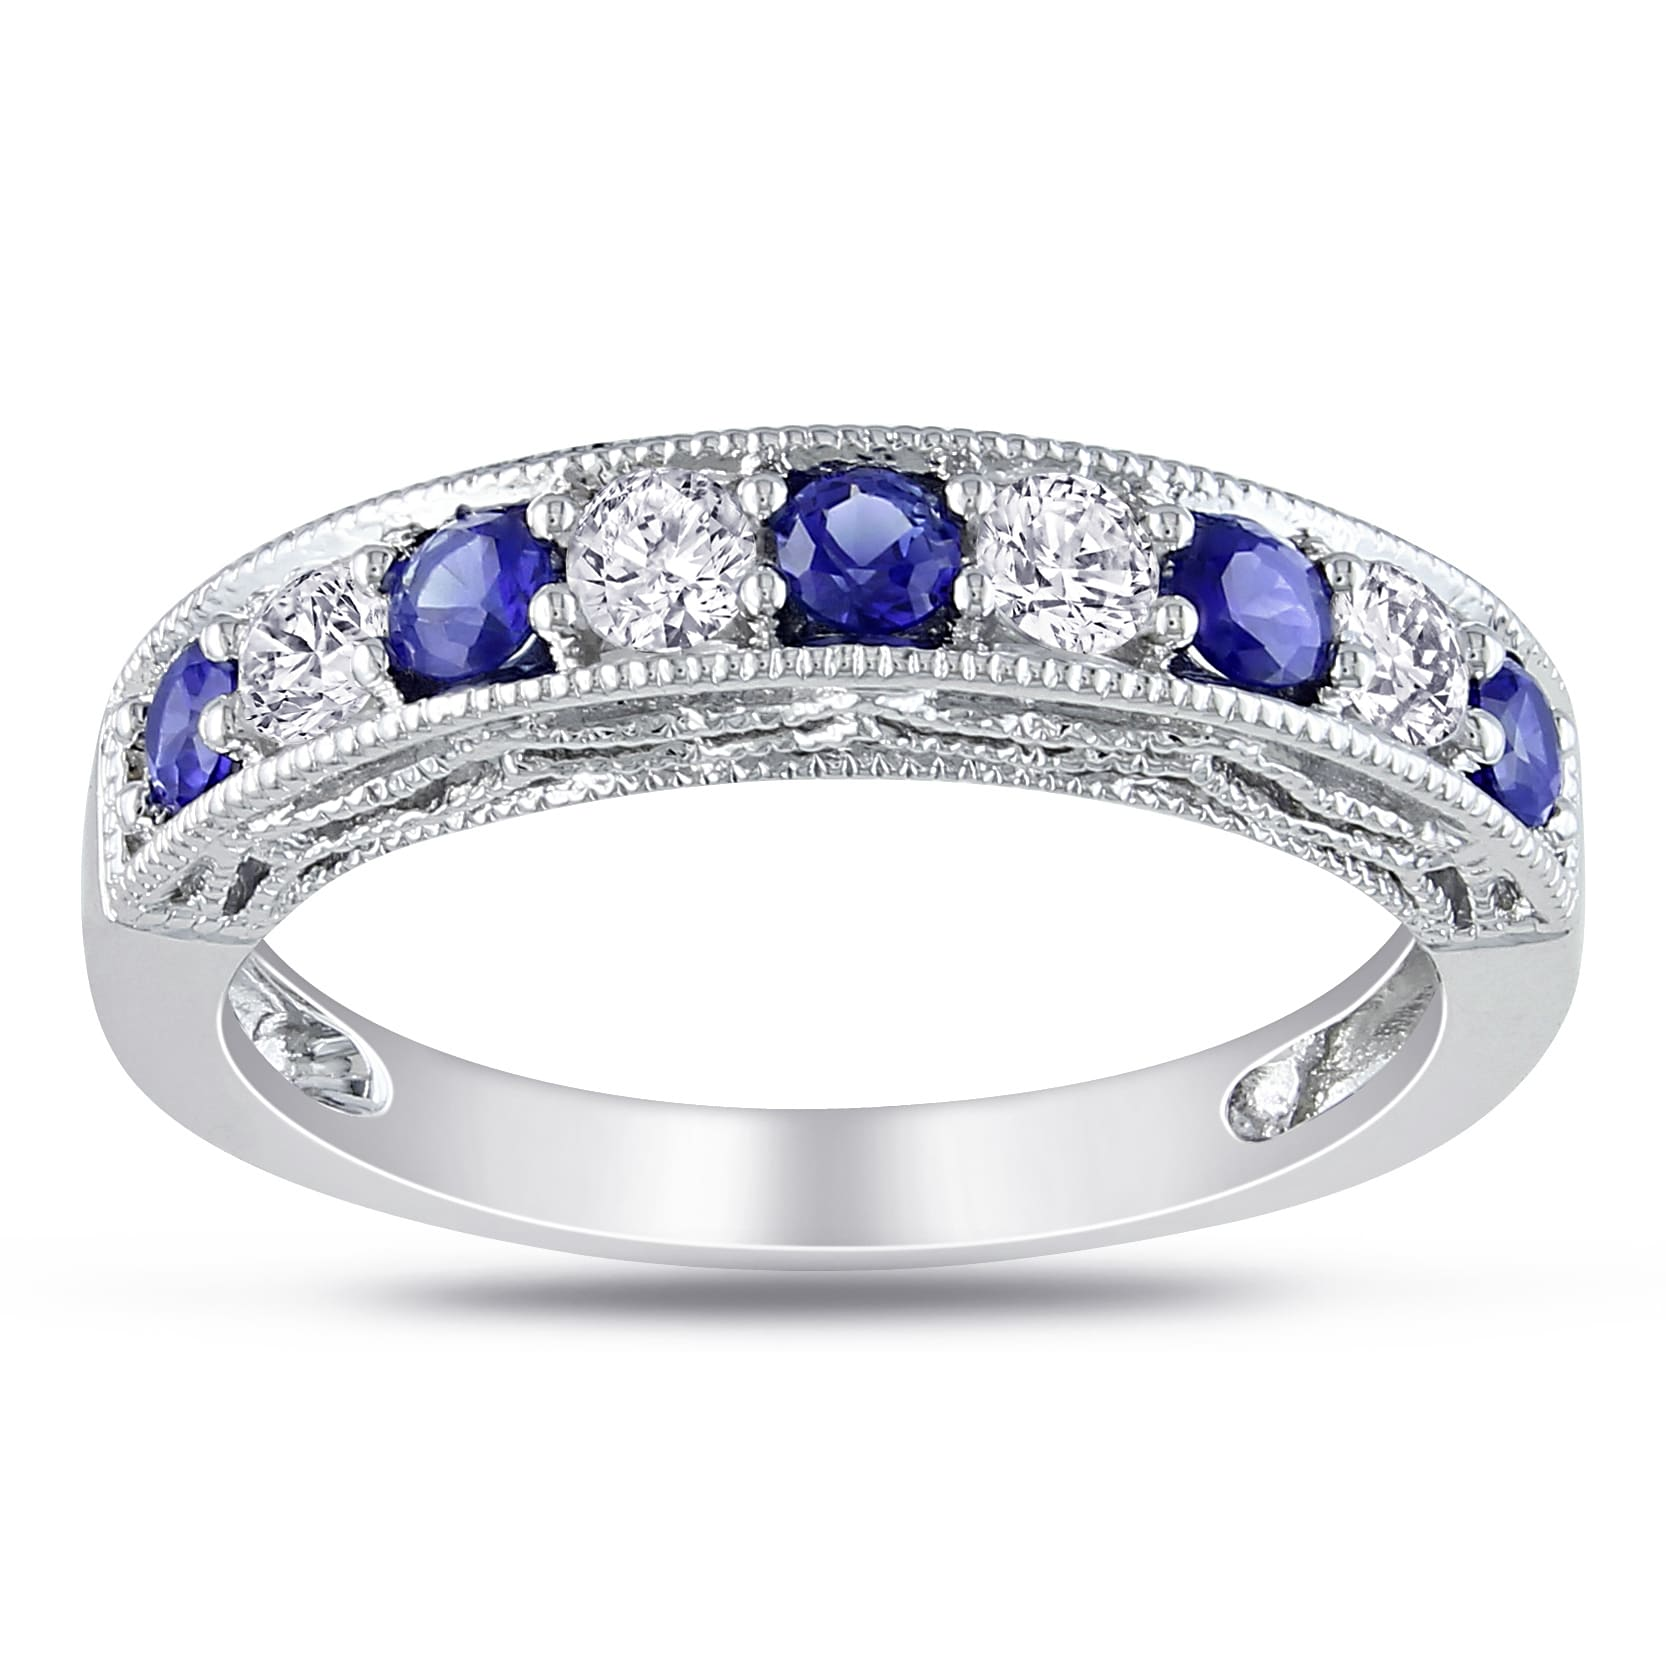 bands set pave round gold wg white anniversary sapphire in with gemstone diamond wedding art deco jewelry blue band nl